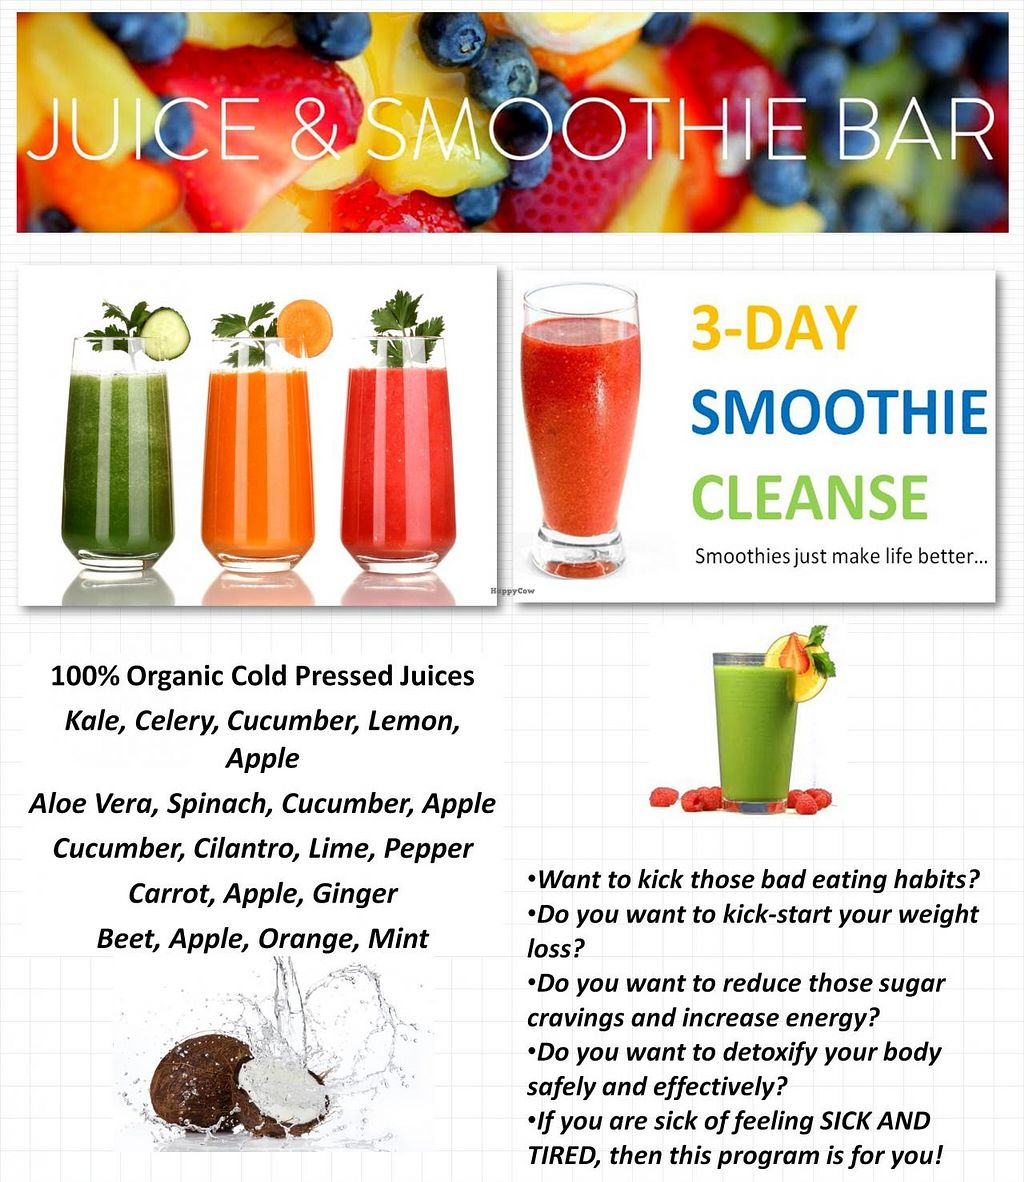 """Photo of Ylive Juice Bar  by <a href=""""/members/profile/PamelaGray"""">PamelaGray</a> <br/>Ylive Cleanse Special <br/> February 5, 2014  - <a href='/contact/abuse/image/45148/63752'>Report</a>"""